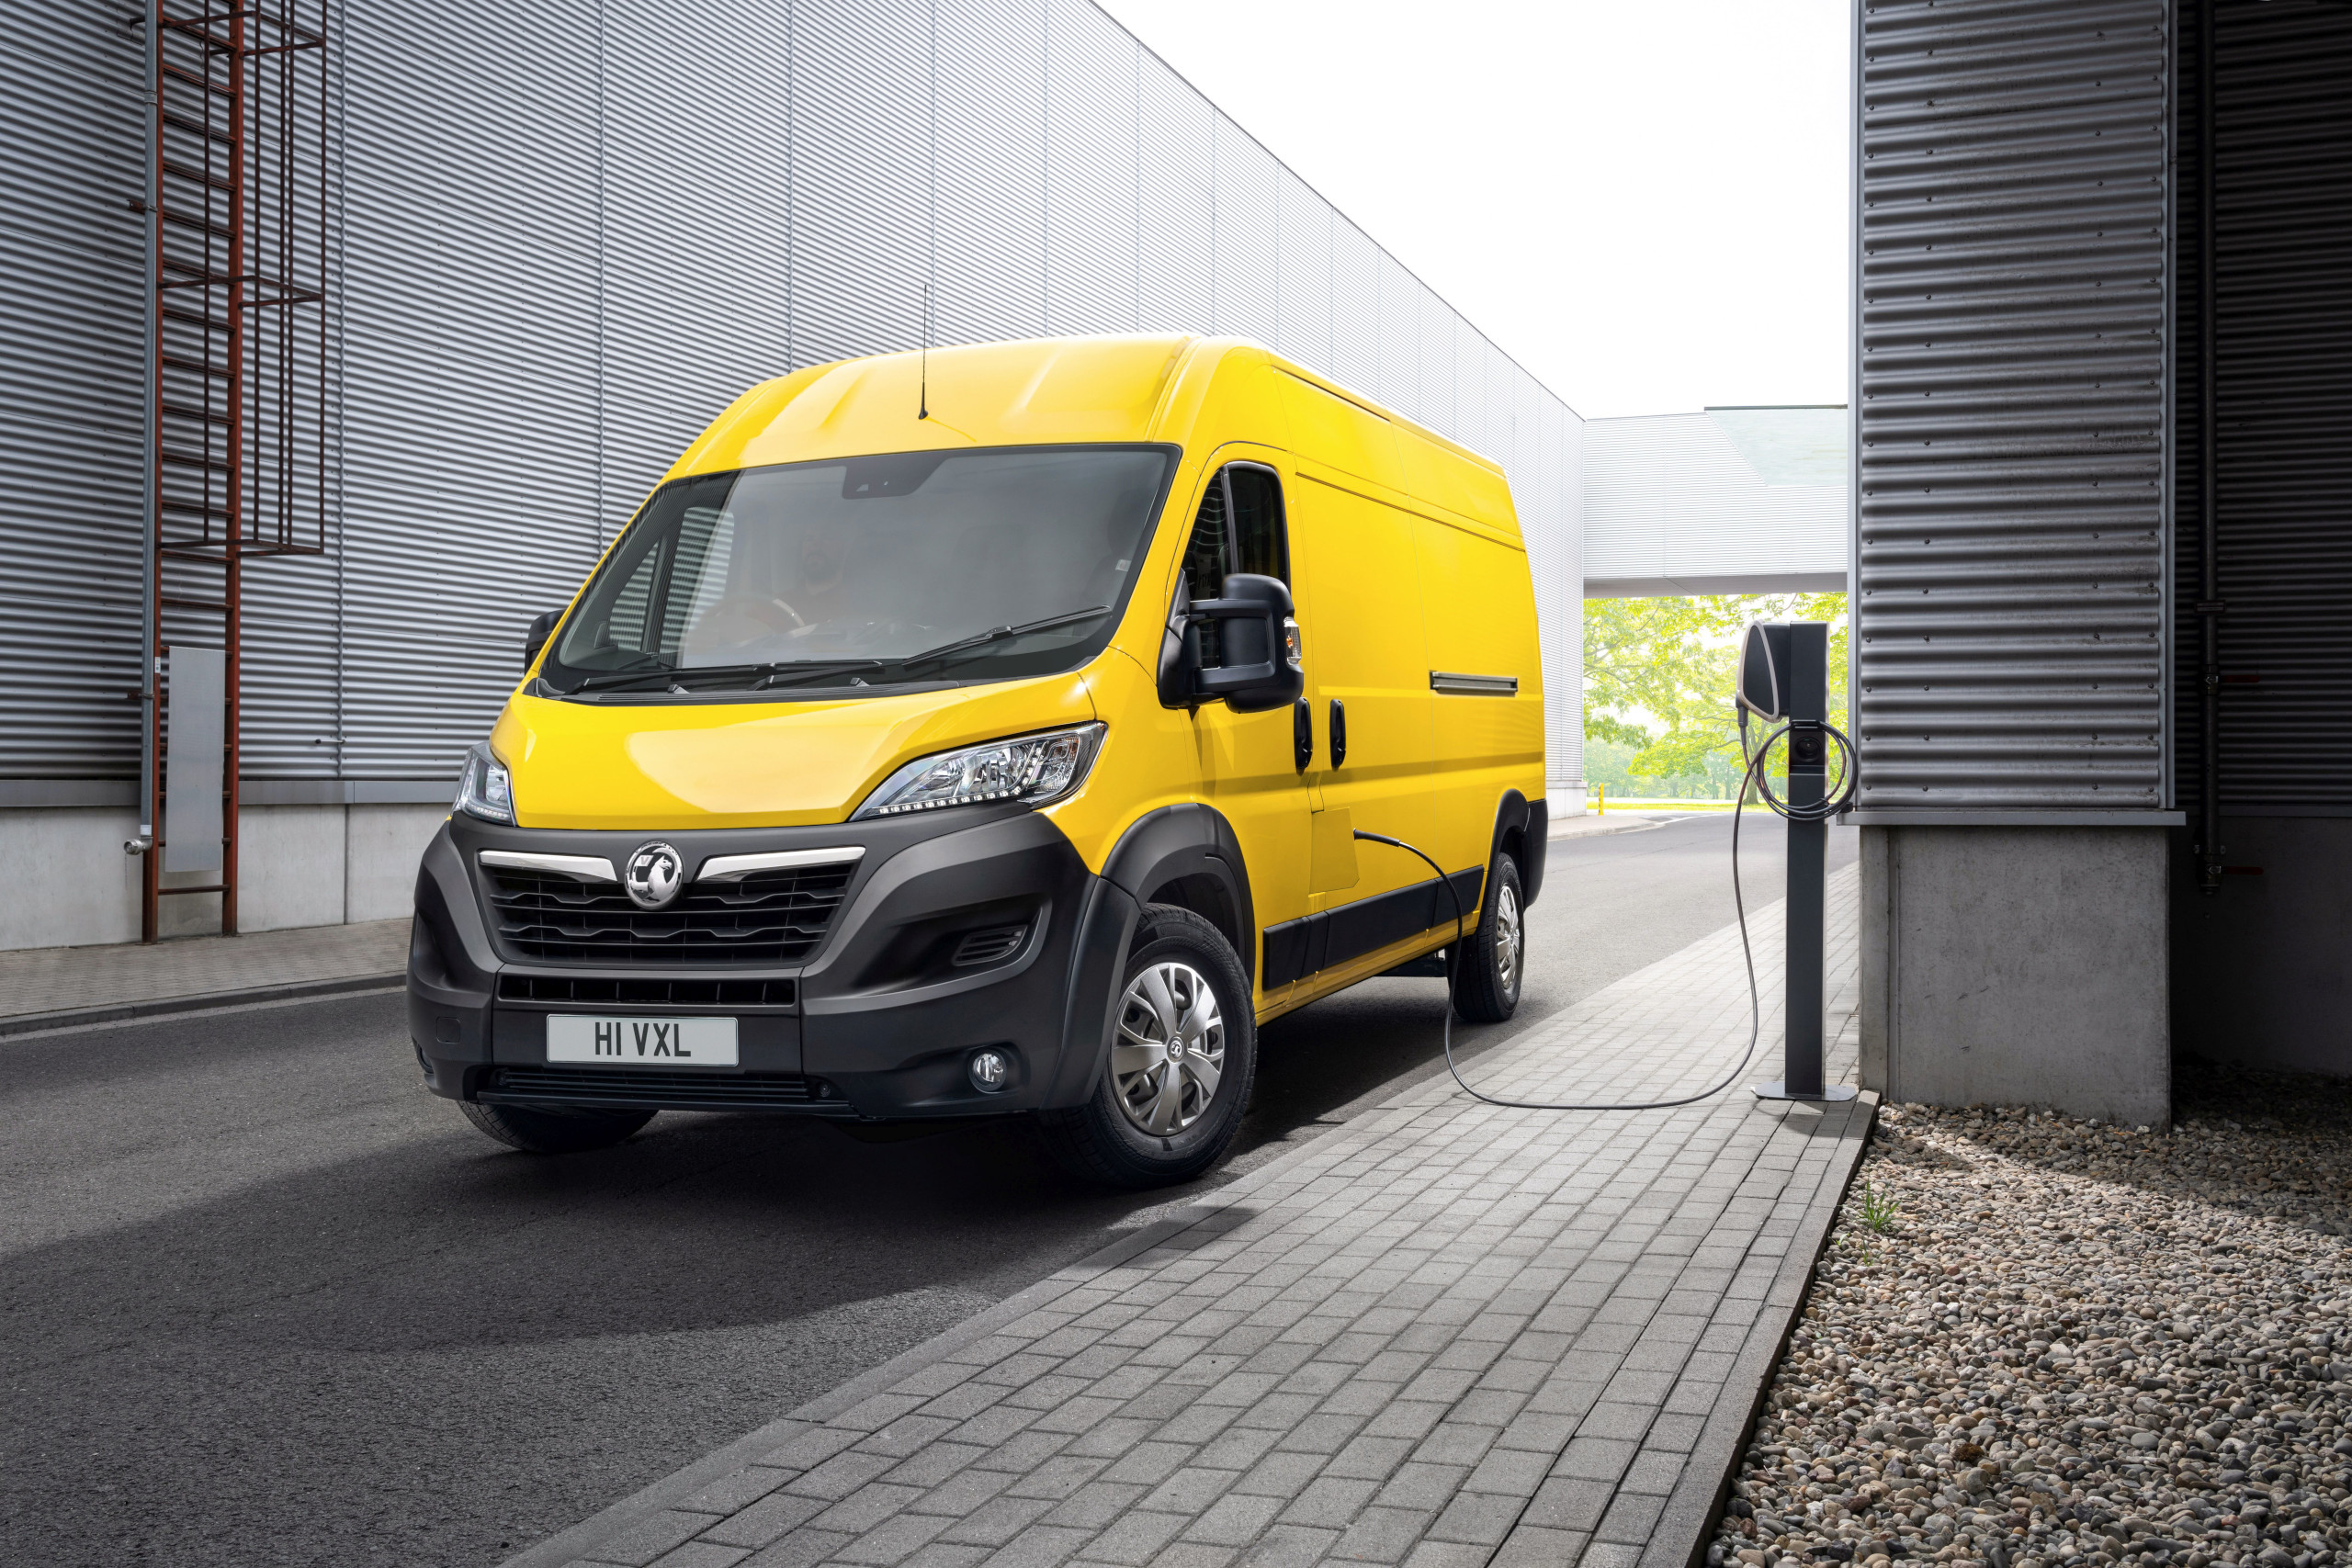 Vauxhall Reveal the Movano-e to Complete Their Electric Range